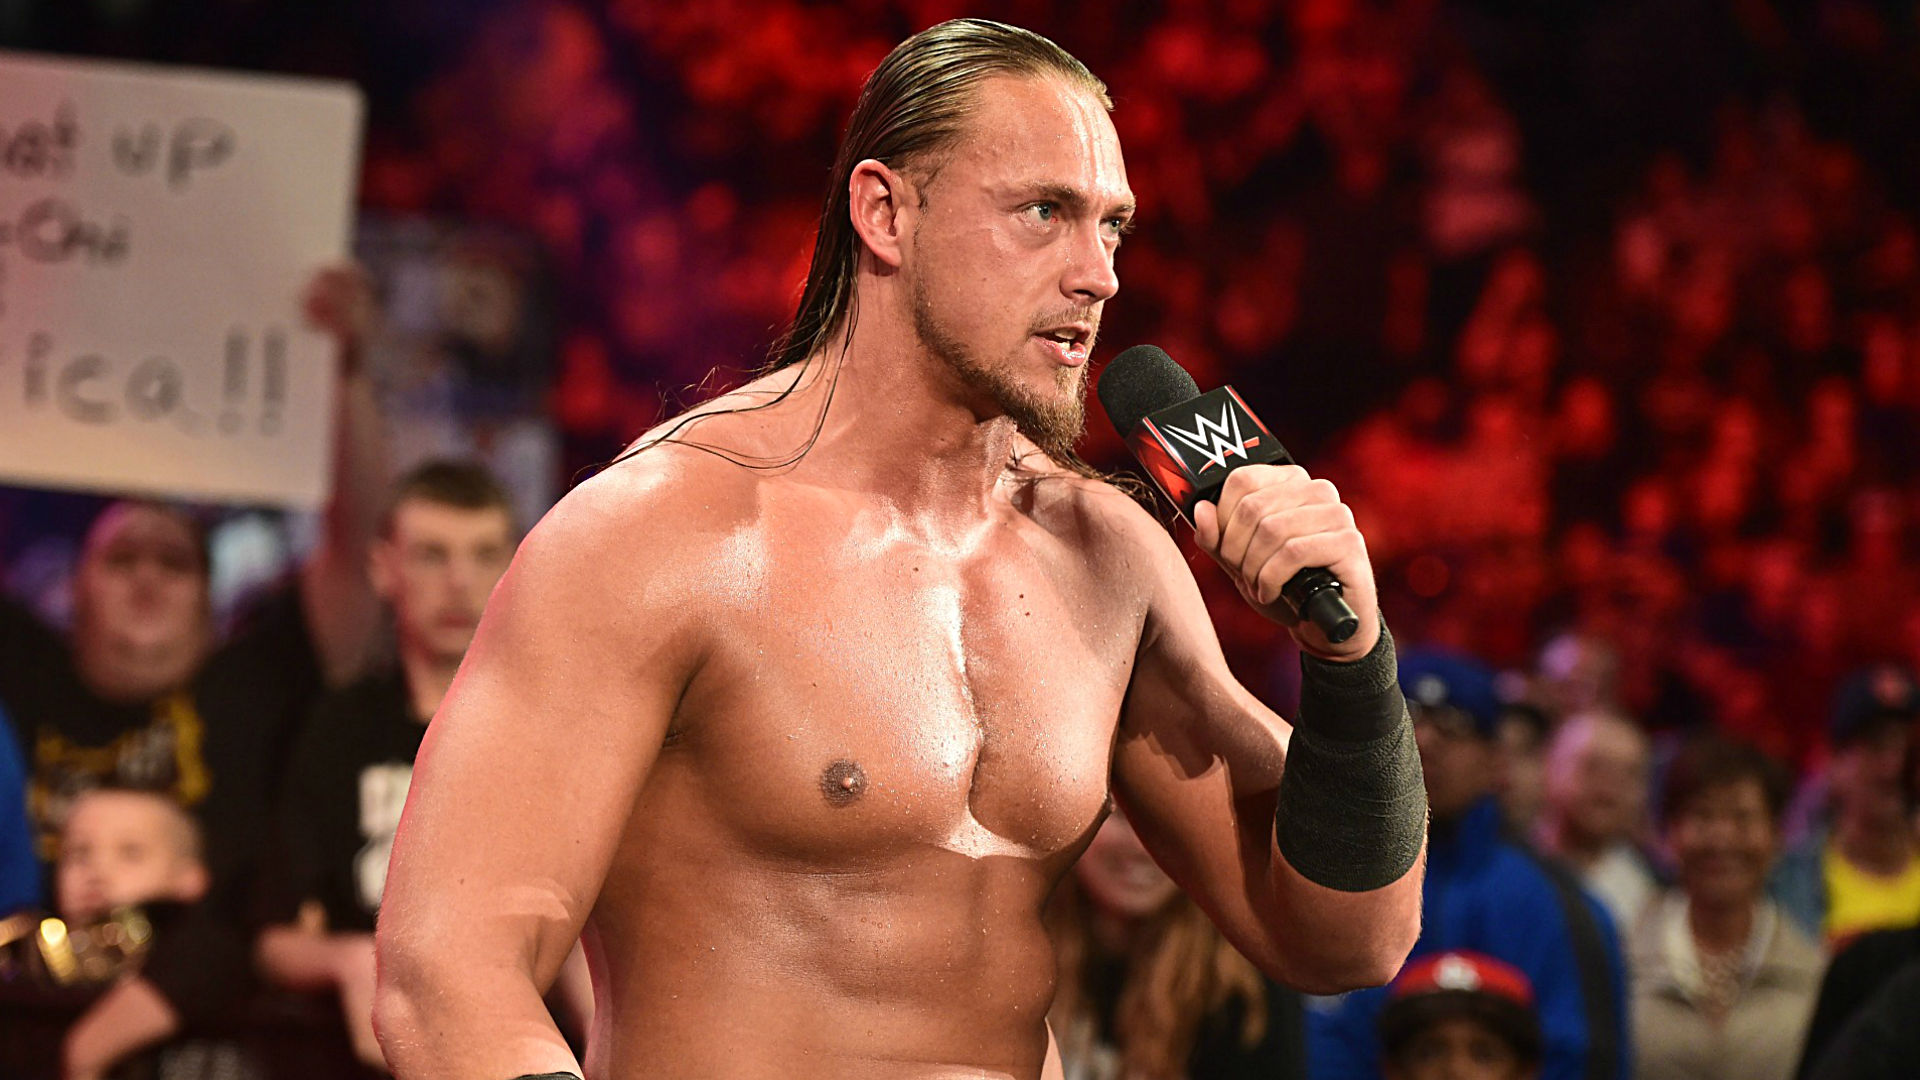 Big Cass released by WWE after 7 years with company